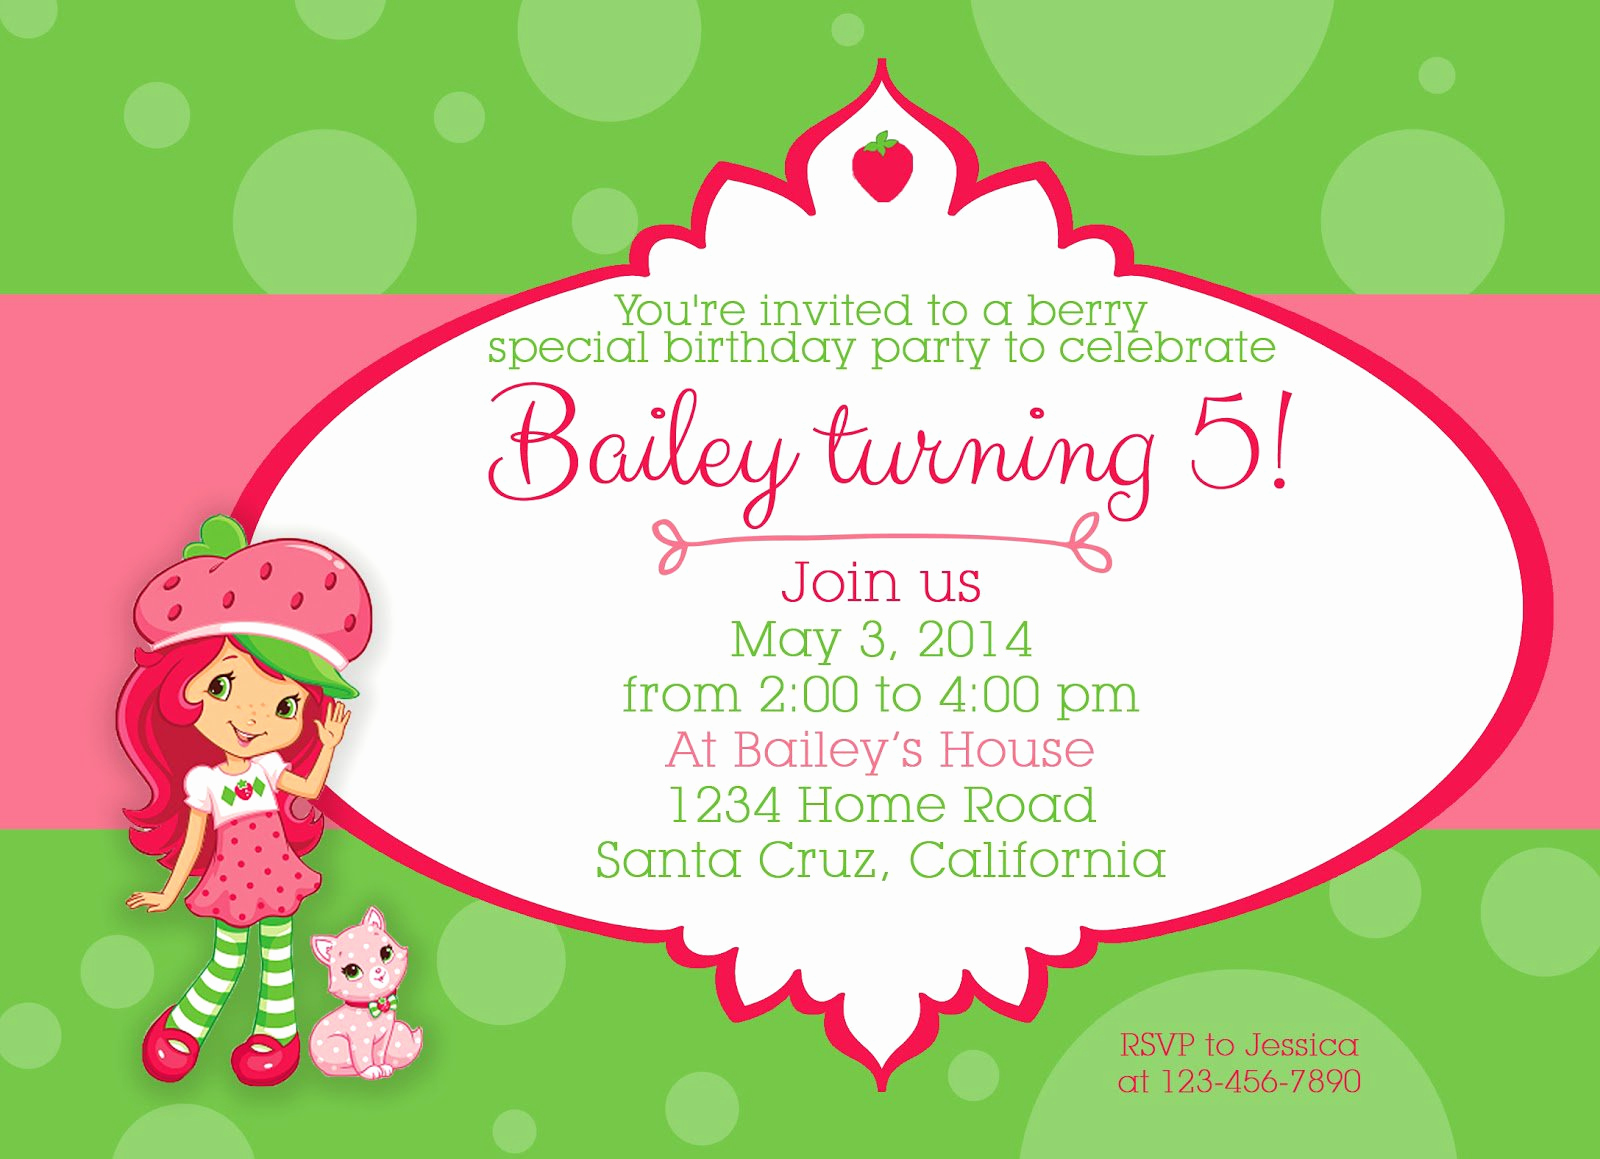 Strawberry Shortcake Invitation Templates Fresh Strawberry Shortcake Birthday Invitations